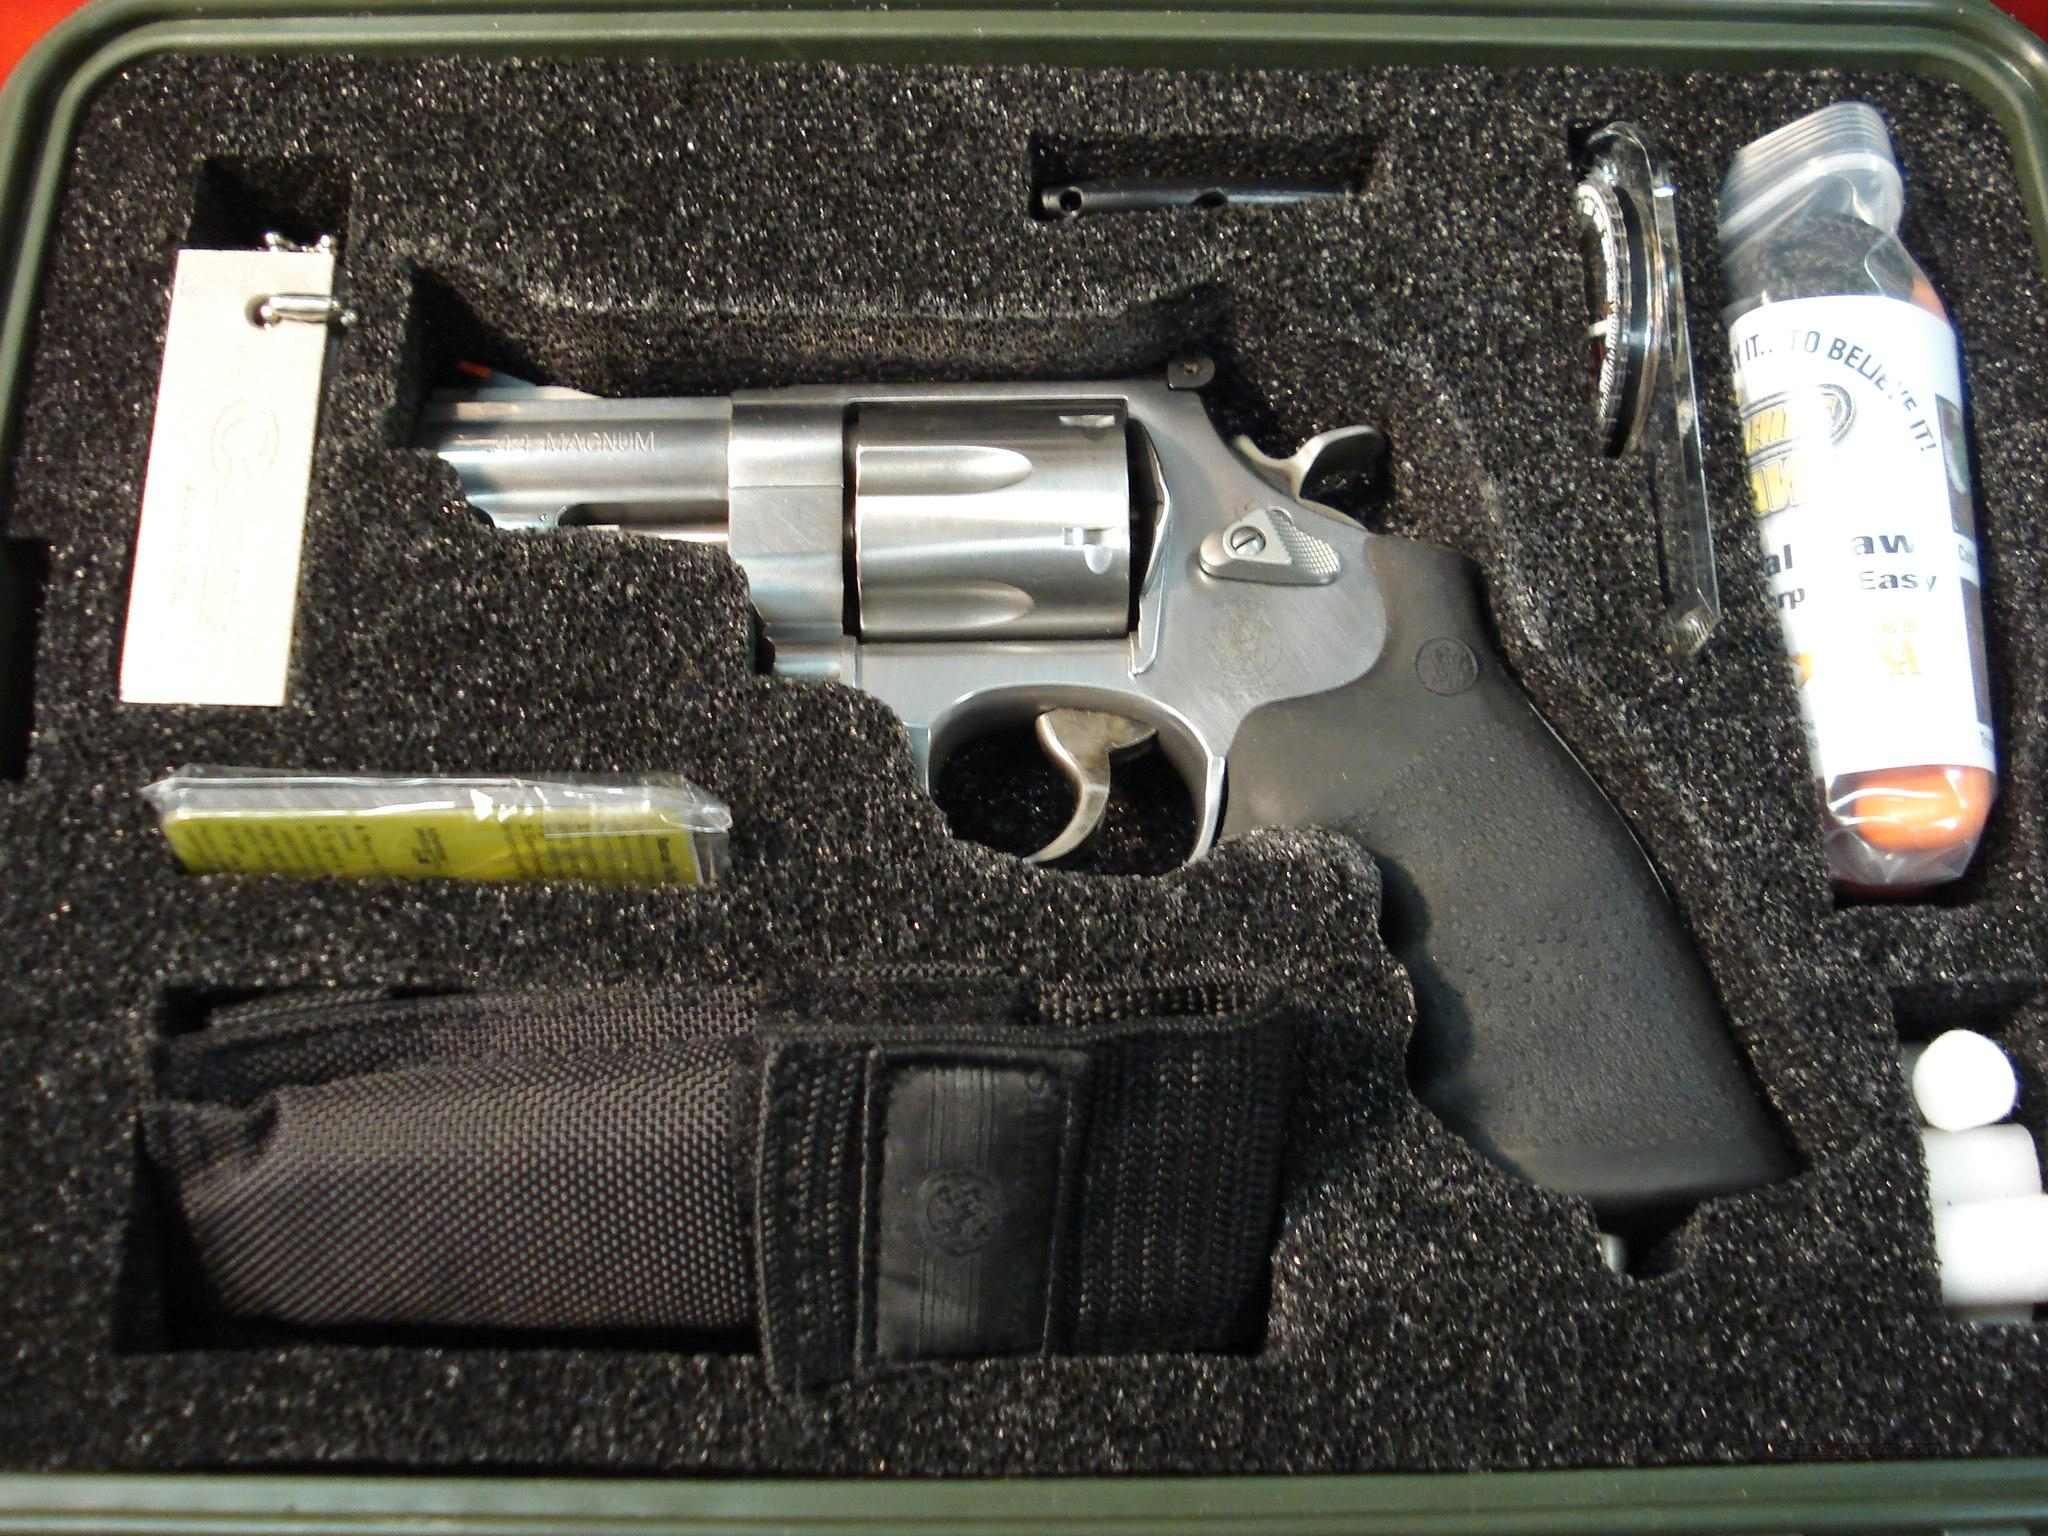 SMITH & WESSON 629 EMERGENCY SURVIVAL TOOL KIT   Guns > Pistols > Smith & Wesson Revolvers > Model 629